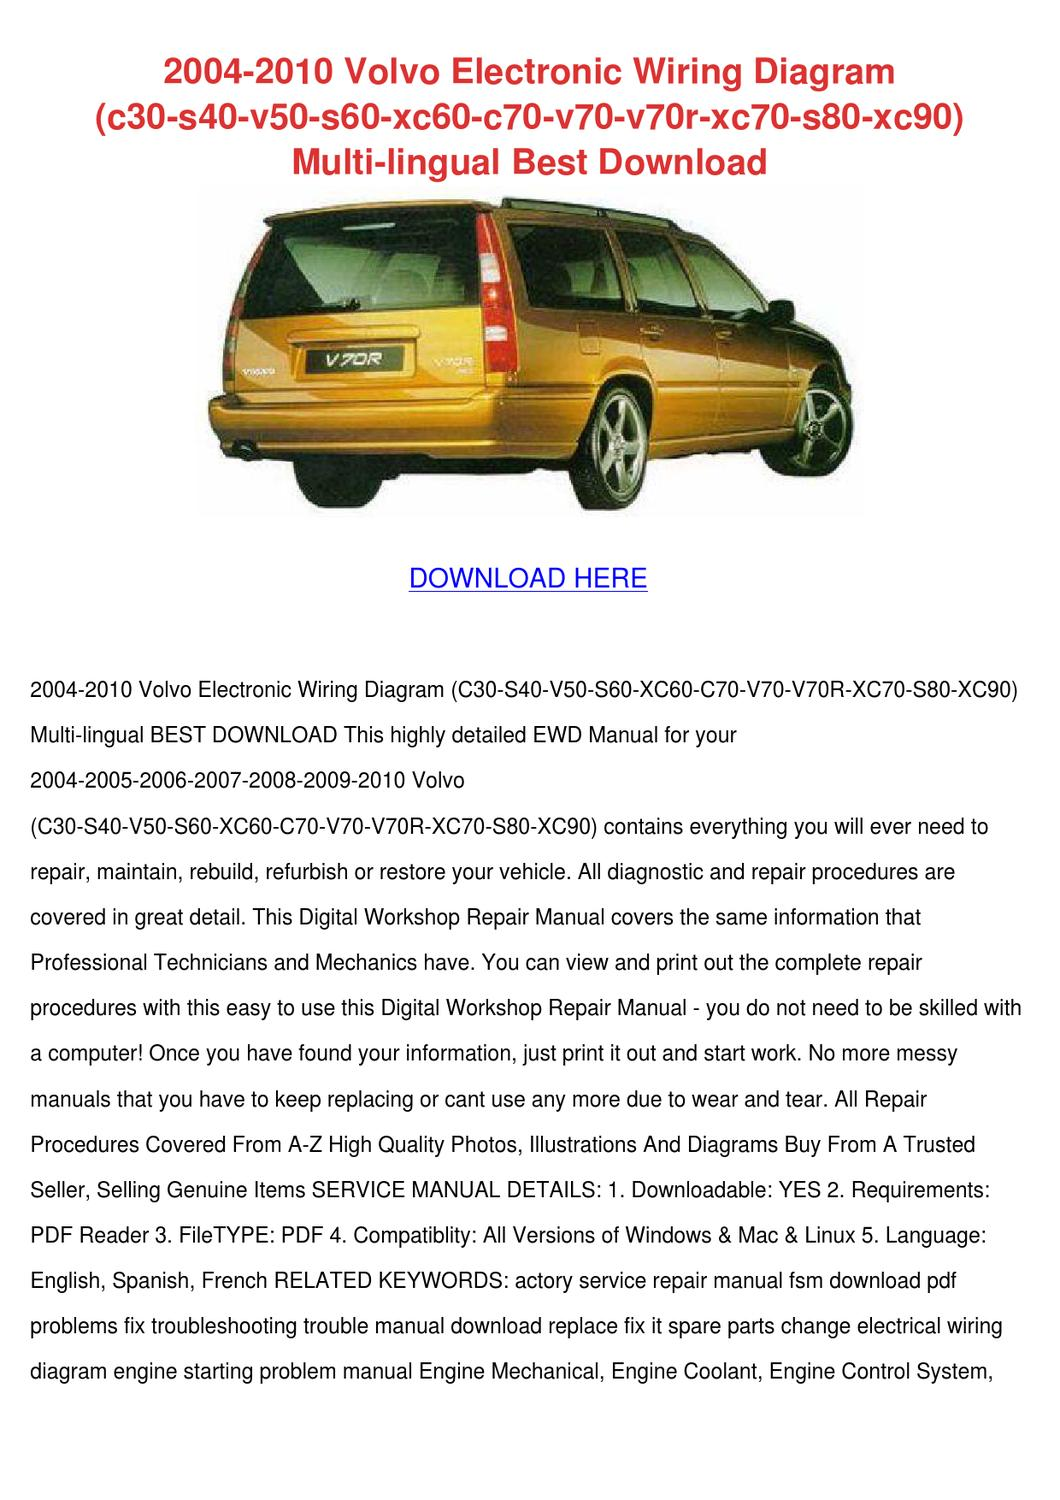 2004 2010 Volvo Electronic Wiring Diagram C30 By Kelleyhurt Issuu Xc90 Engine